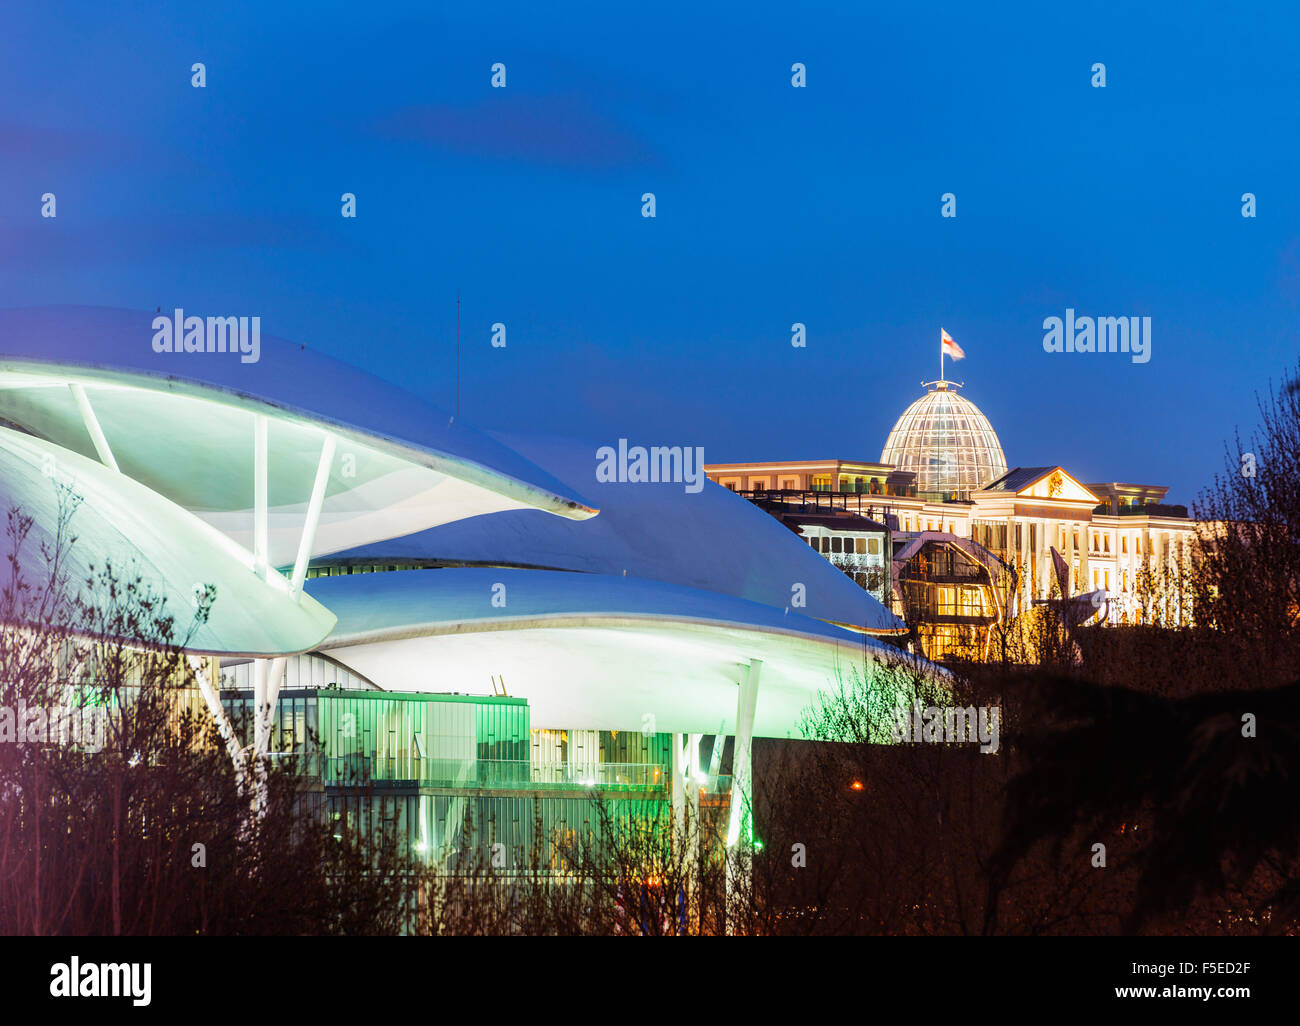 Public Service Hall, House of Justice and Presidential Palace, Tbilisi, Georgia, Caucasus, Central Asia, Asia - Stock Image